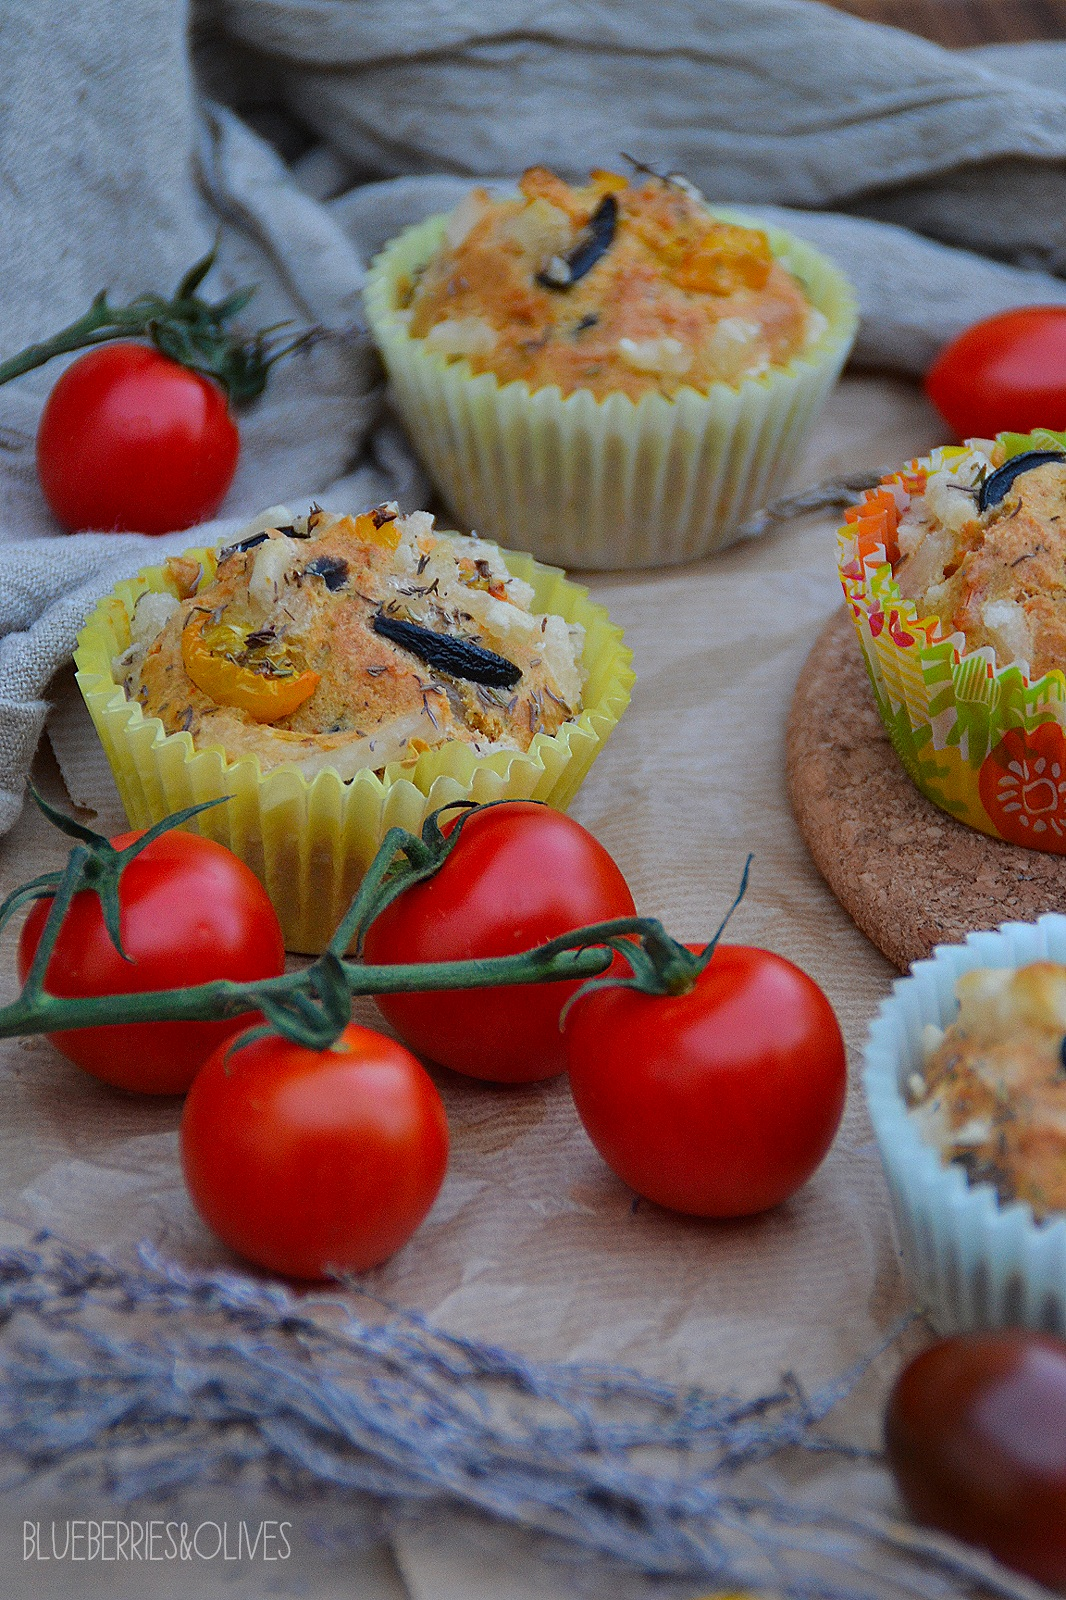 SAVOURY MUFFINS WITH OLIVES, TOMATO & AROMATIC HERBS